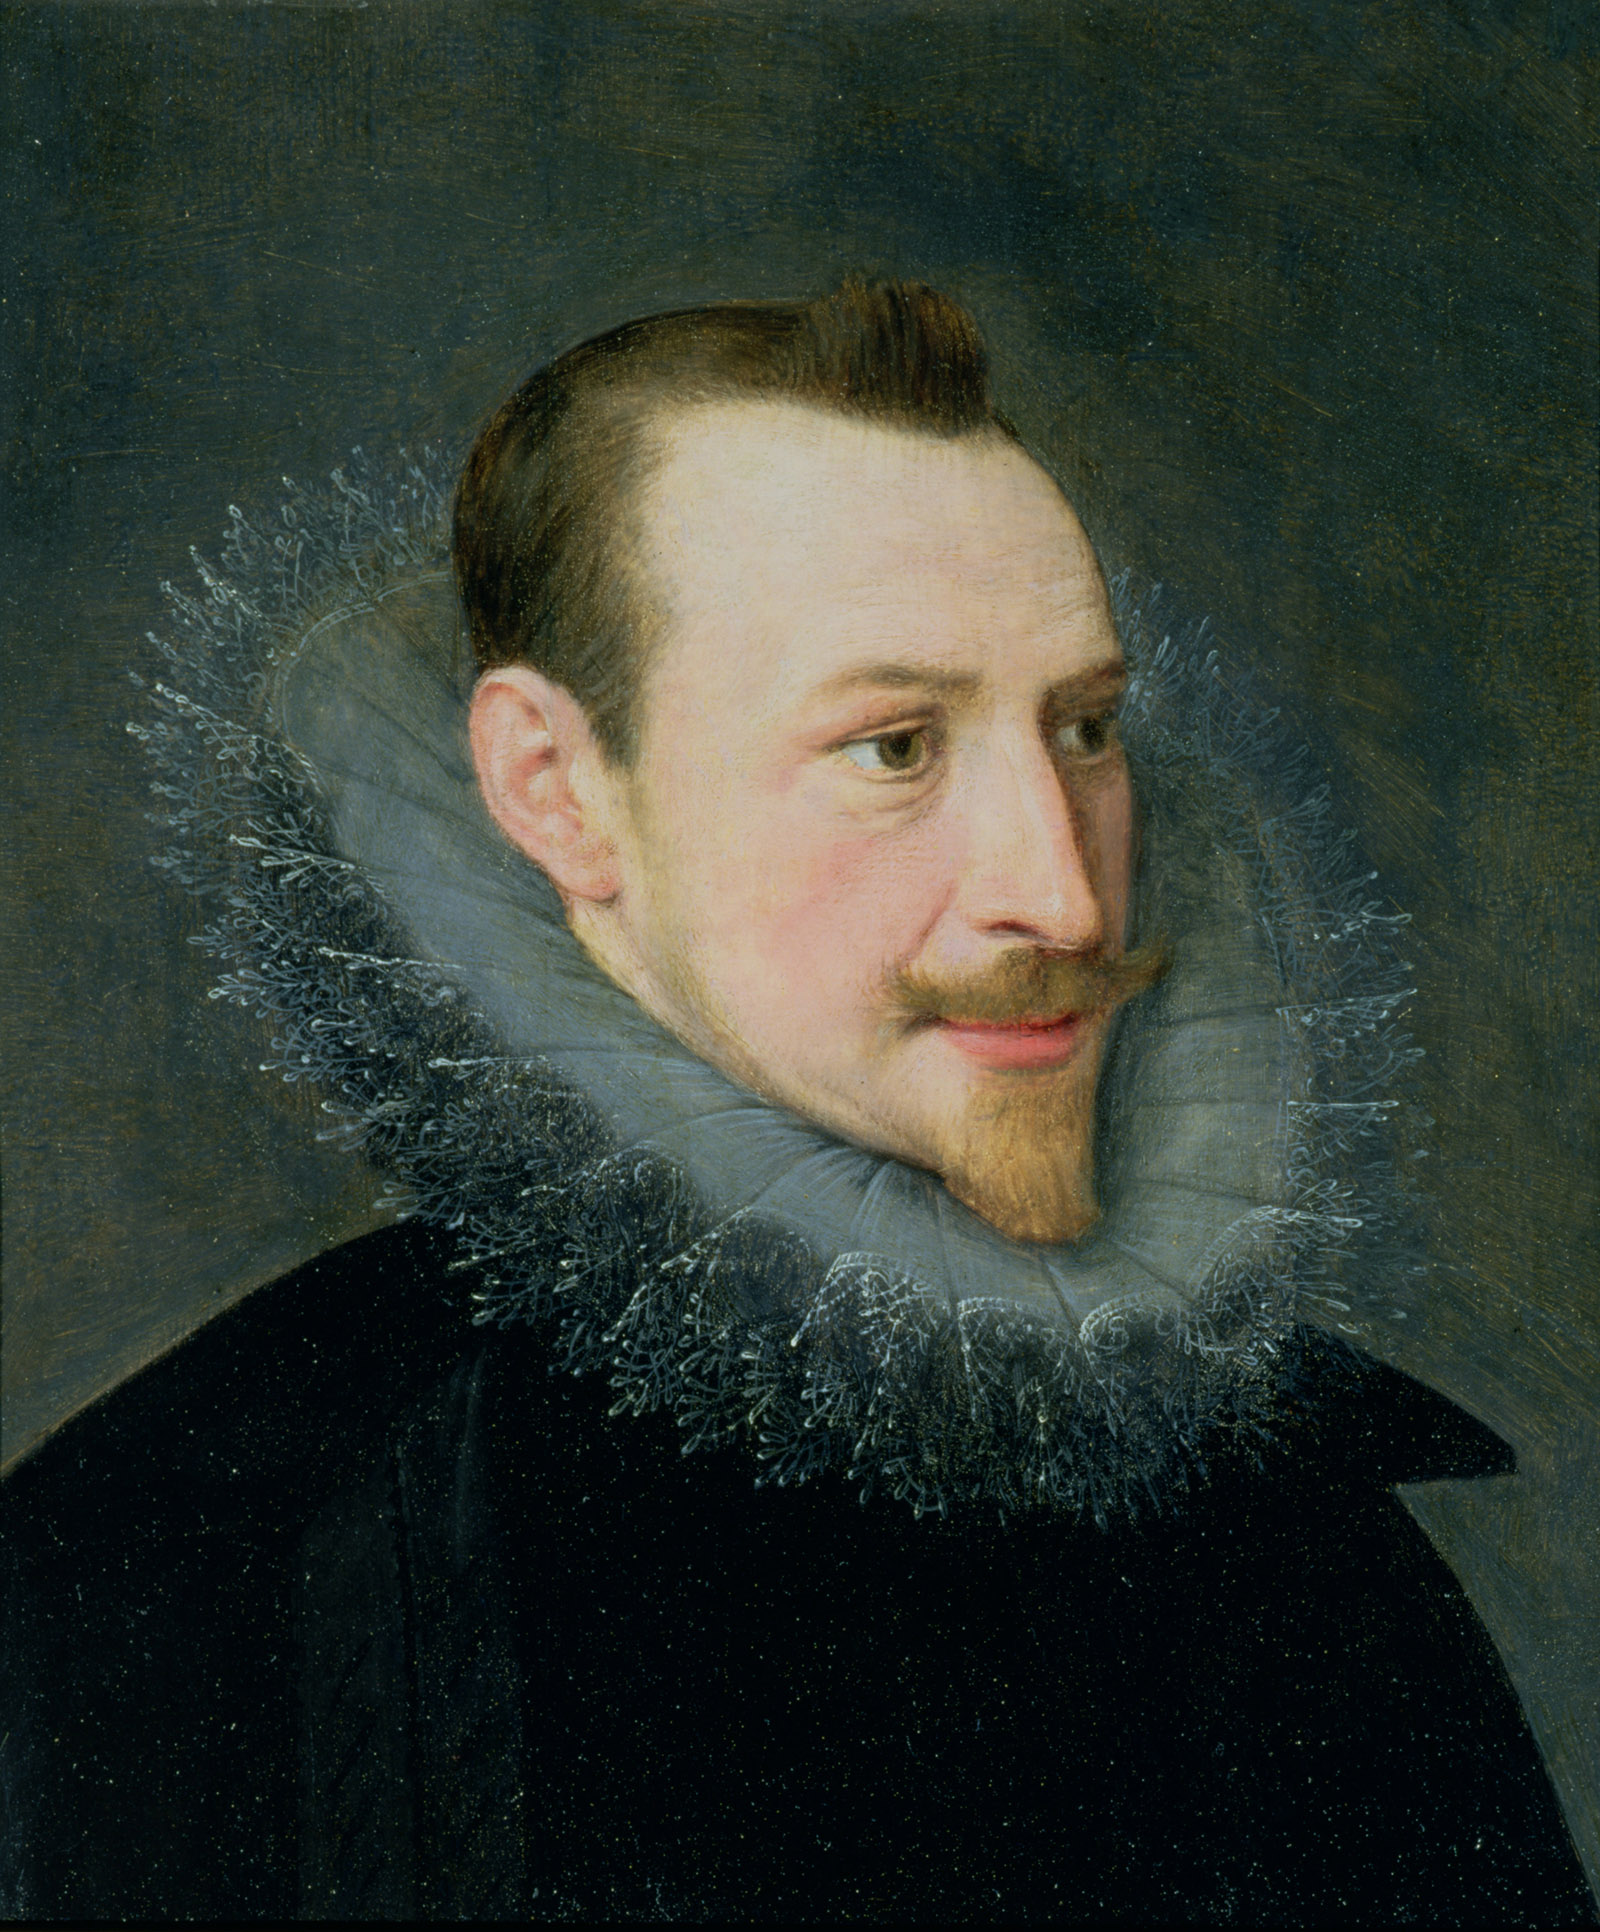 A portrait traditionally considered to be of Edmund Spenser, though disputed by modern scholars